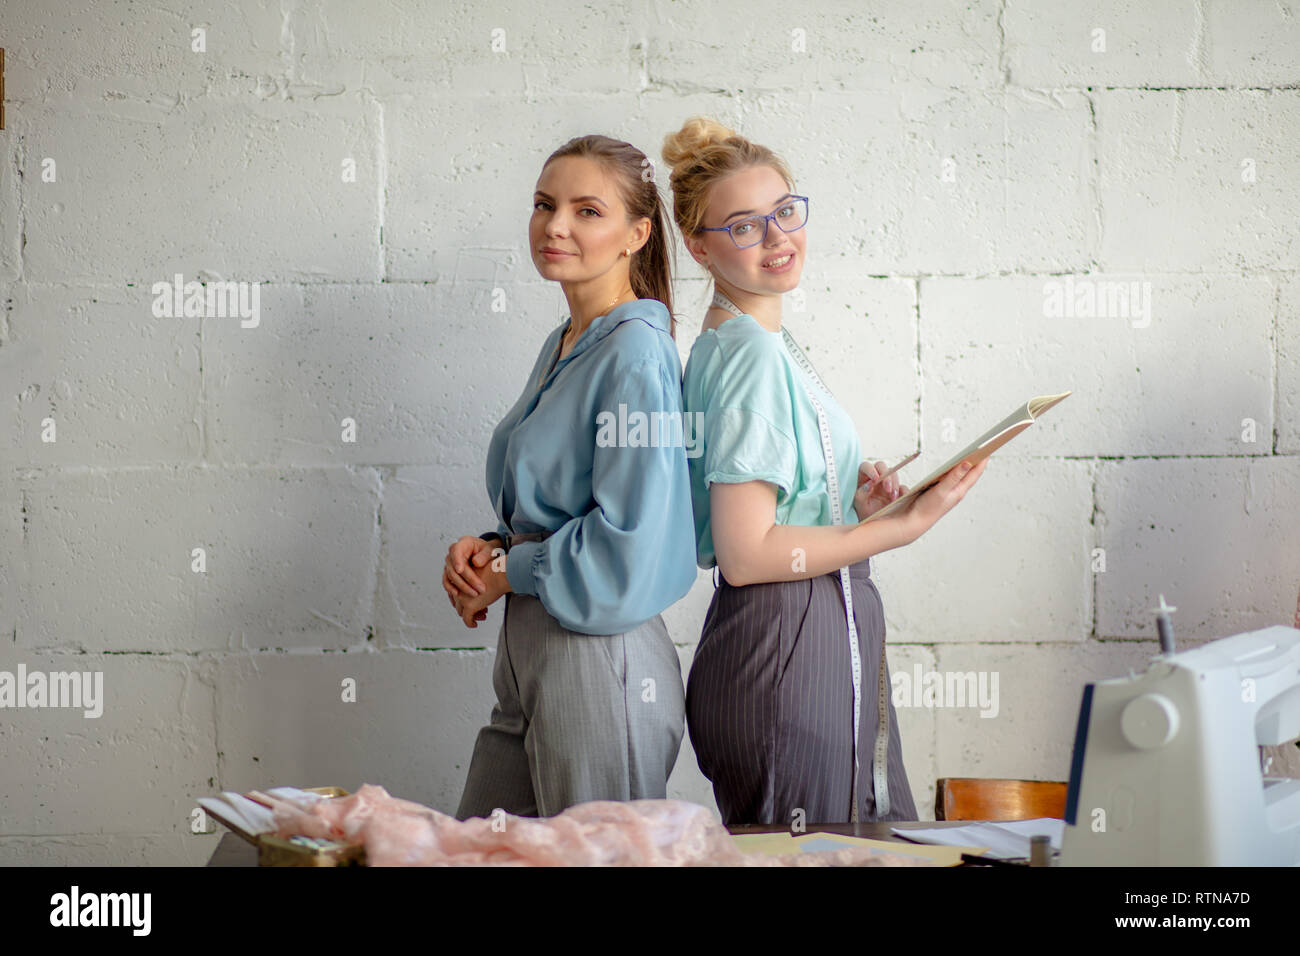 Portrait of two pretty young female seamstresses, fashionably dressed in pastel colours, standing back to back and looking at camera in bespoke clothi - Stock Image